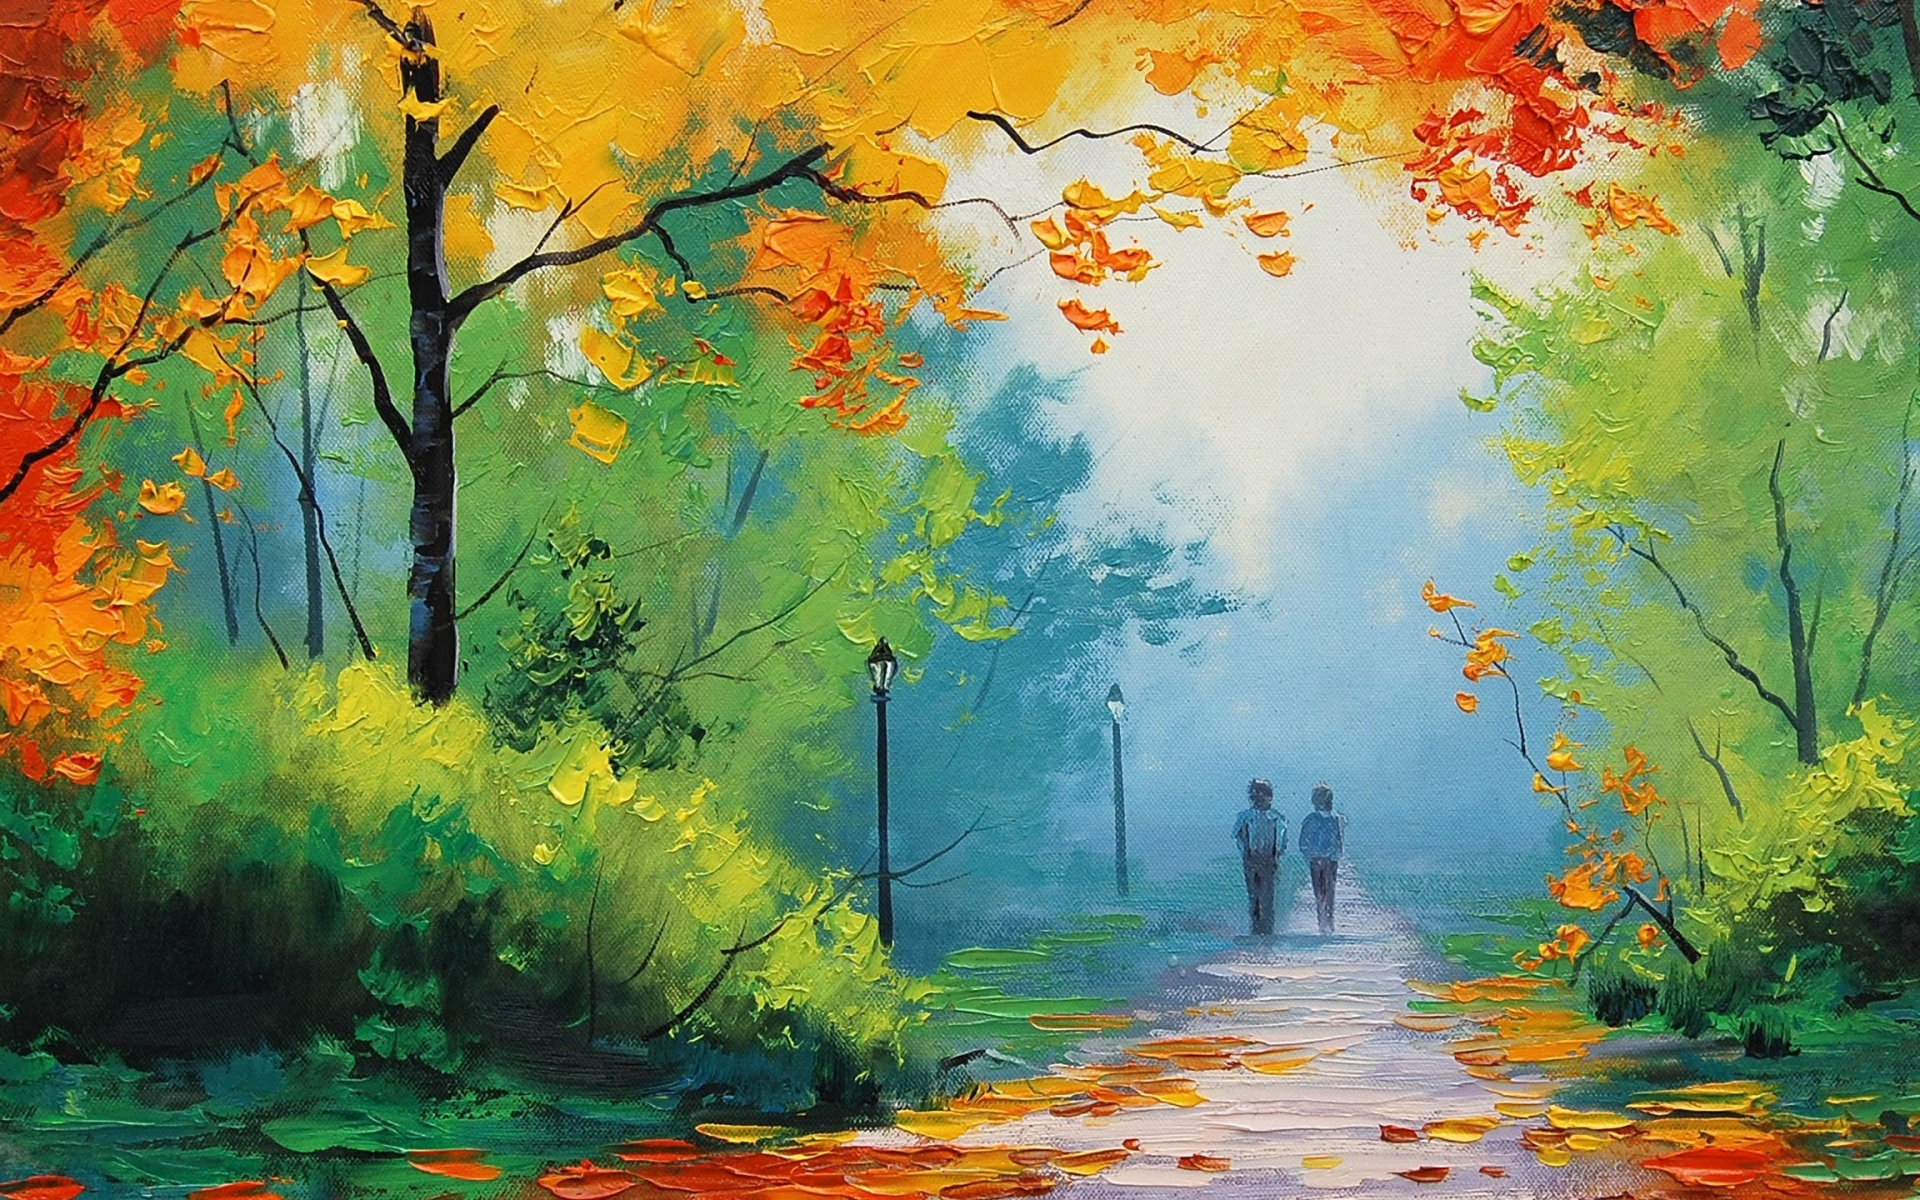 Love couple Painting Wallpaper : 1920x1200 Autumn Painting couple desktop Pc and Mac wallpaper